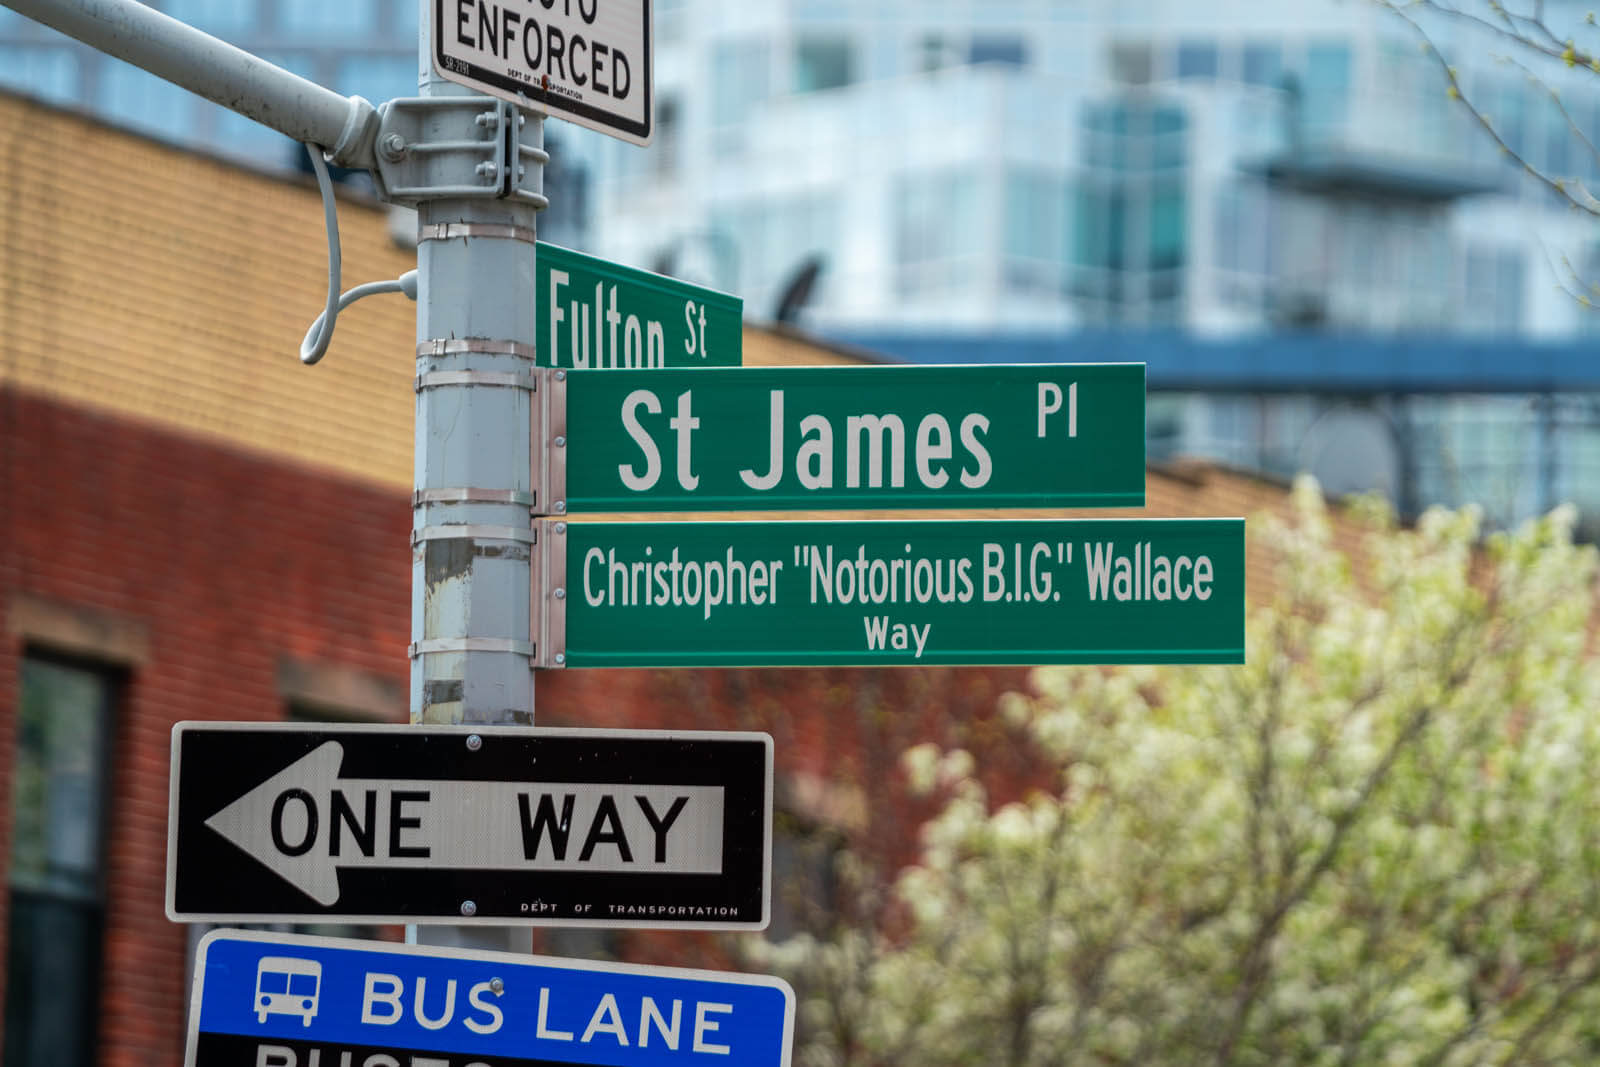 Christopher Wallace Way at the corner of St James Pl and Fulton in Clinton Hill biggie smalls Brooklyn